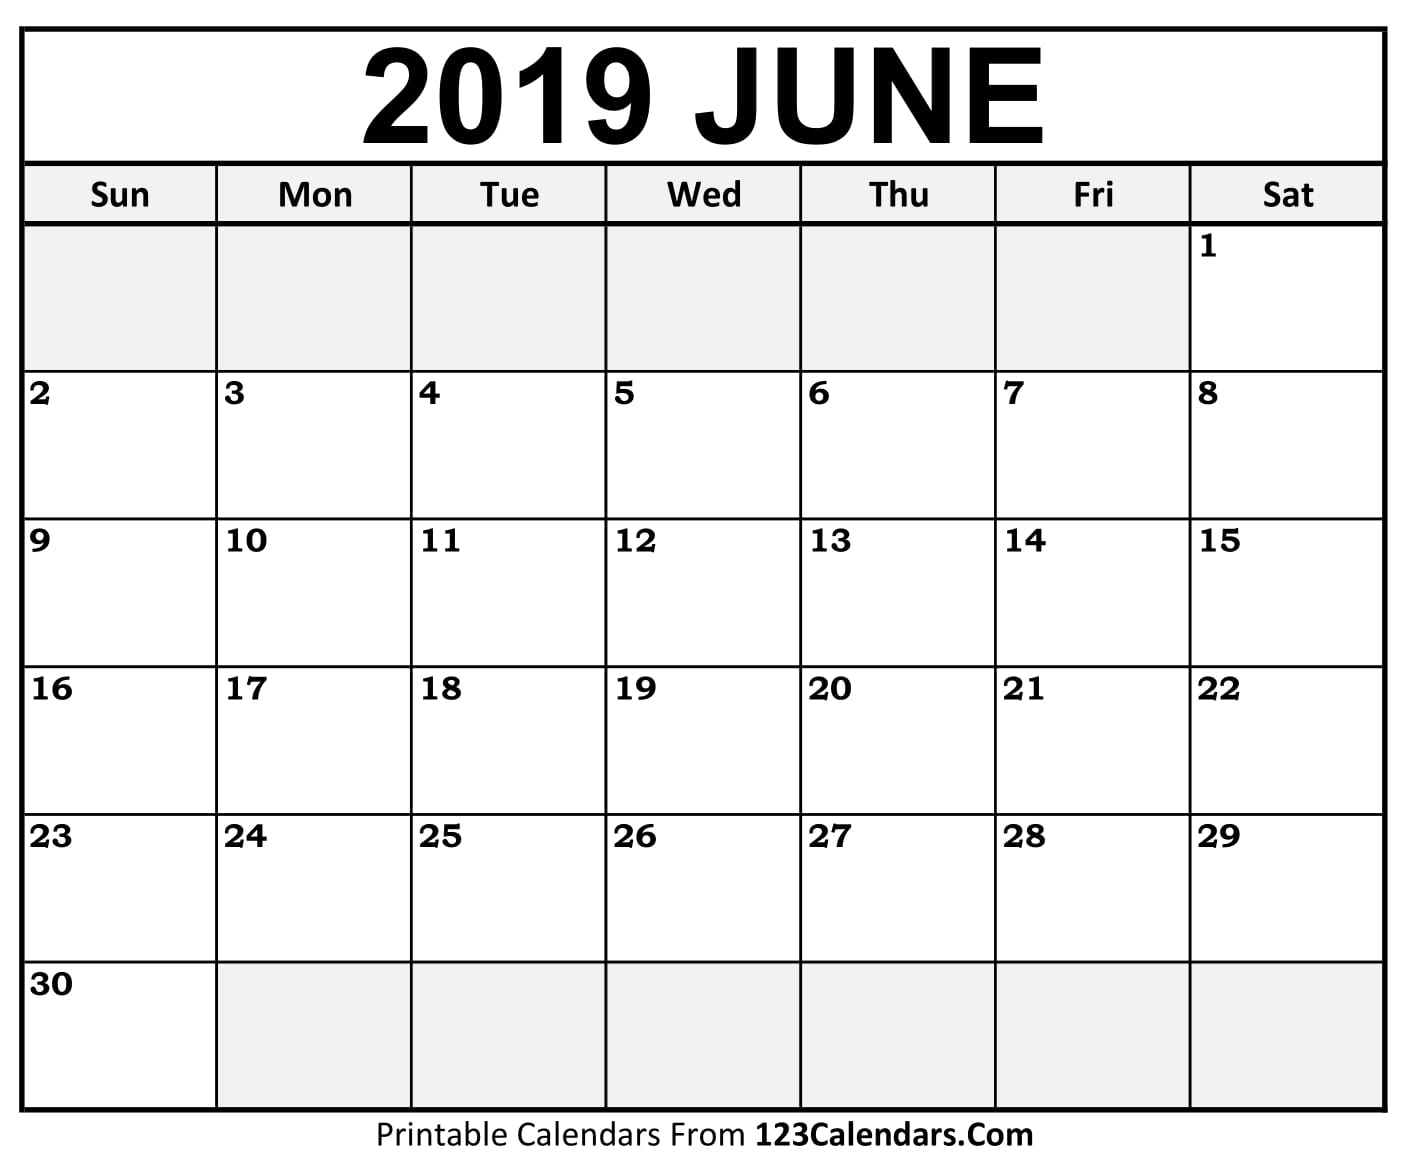 Printable June 2018 Calendar Templates - 123Calendars.Com 123Calendars.Com Printable June 2018 Calendar